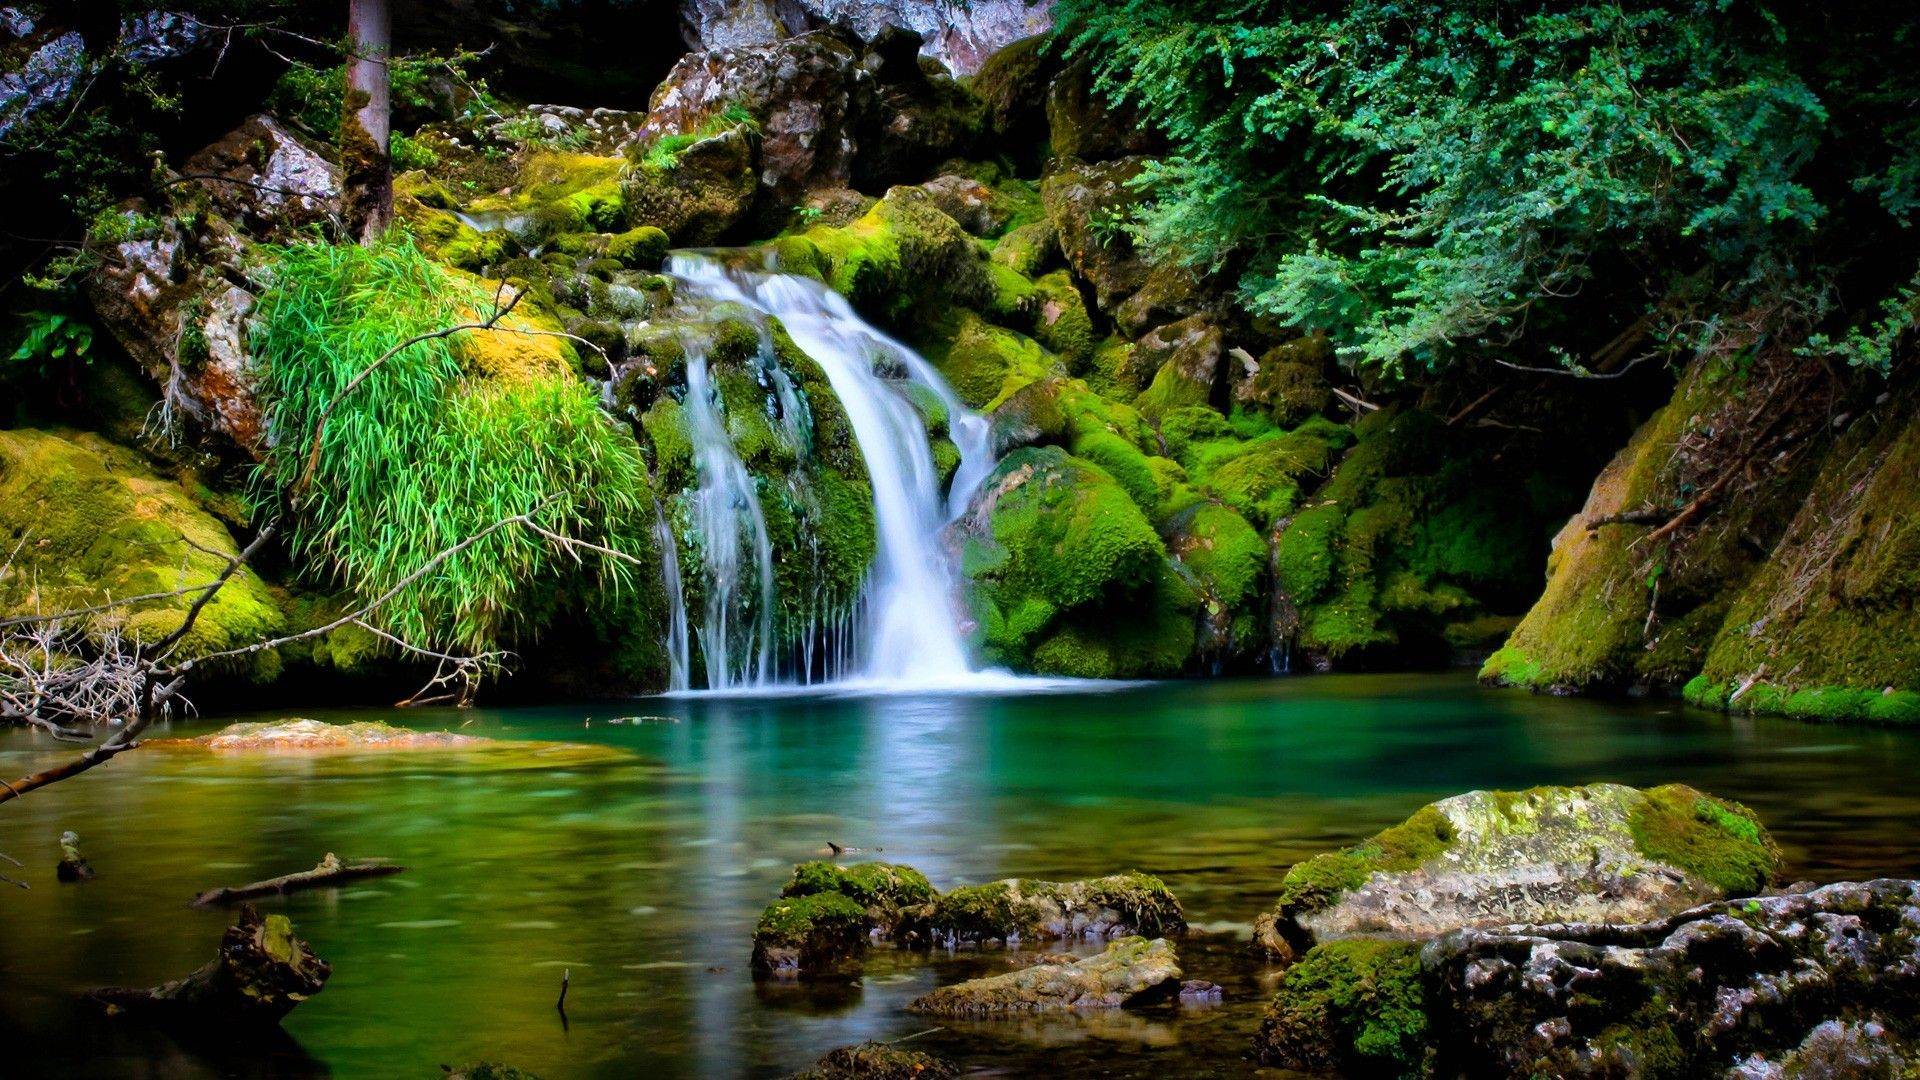 Eden Tag wallpapers: Green Lanscape Eden Garden Wild Waterfall ...